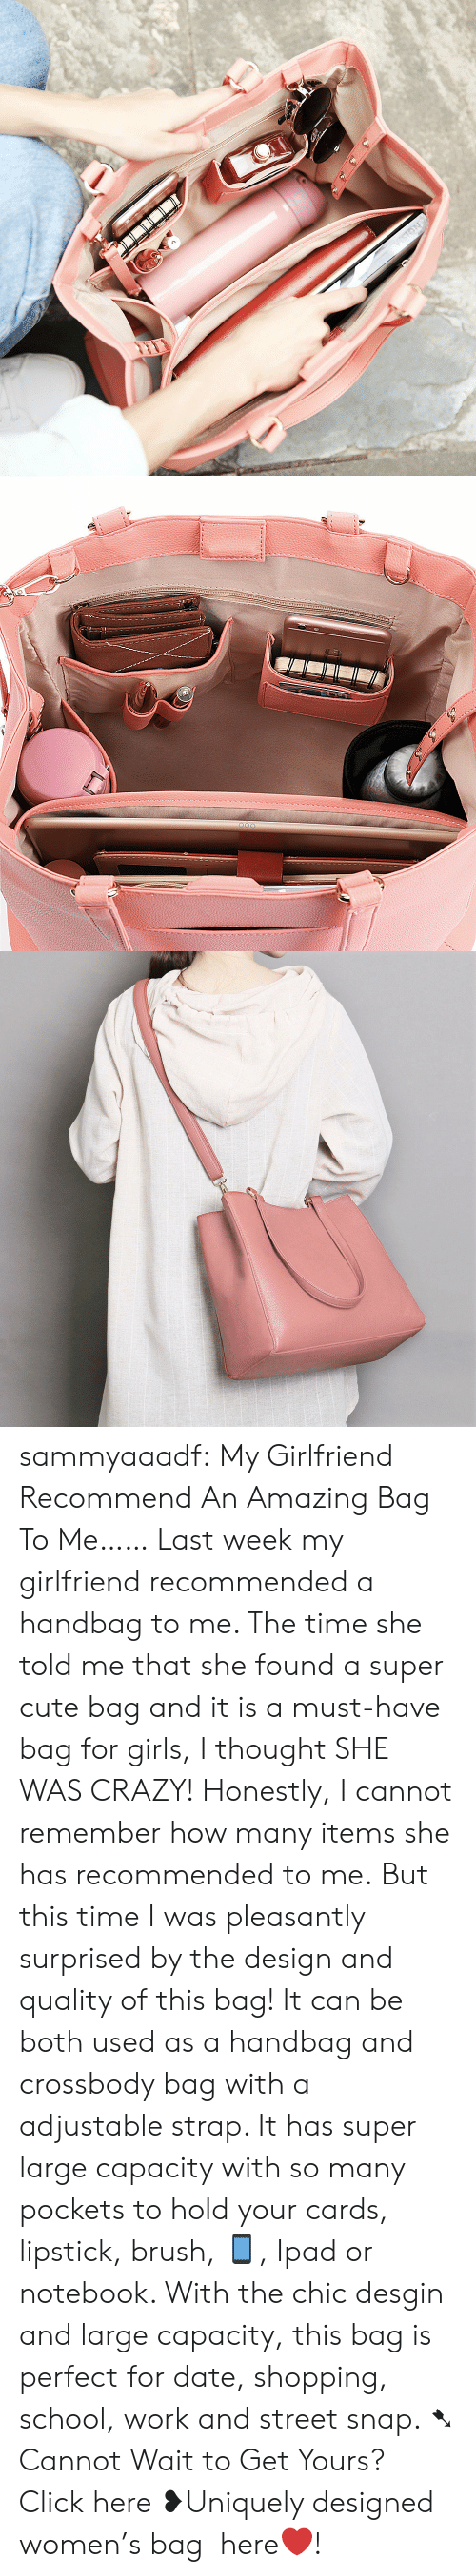 handbag: sammyaaadf:  My Girlfriend Recommend An Amazing Bag To Me…… Last week my girlfriend recommended a handbag to me. The time she told me that she found a super cute bag and it is a must-have bag for girls, I thought SHE WAS CRAZY! Honestly, I cannot remember how many items she has recommended to me. But this time I was pleasantly surprised by the design and quality of this bag! It can be both used as a handbag and crossbody bag with a adjustable strap. It has super large capacity with so many pockets to hold your cards, lipstick, brush, 📱, Ipad or notebook. With the chic desgin and large capacity, this bag is perfect for date, shopping, school, work and street snap. ➷ Cannot Wait to Get Yours? Click here  ❥Uniquely designed women's bag here❤!